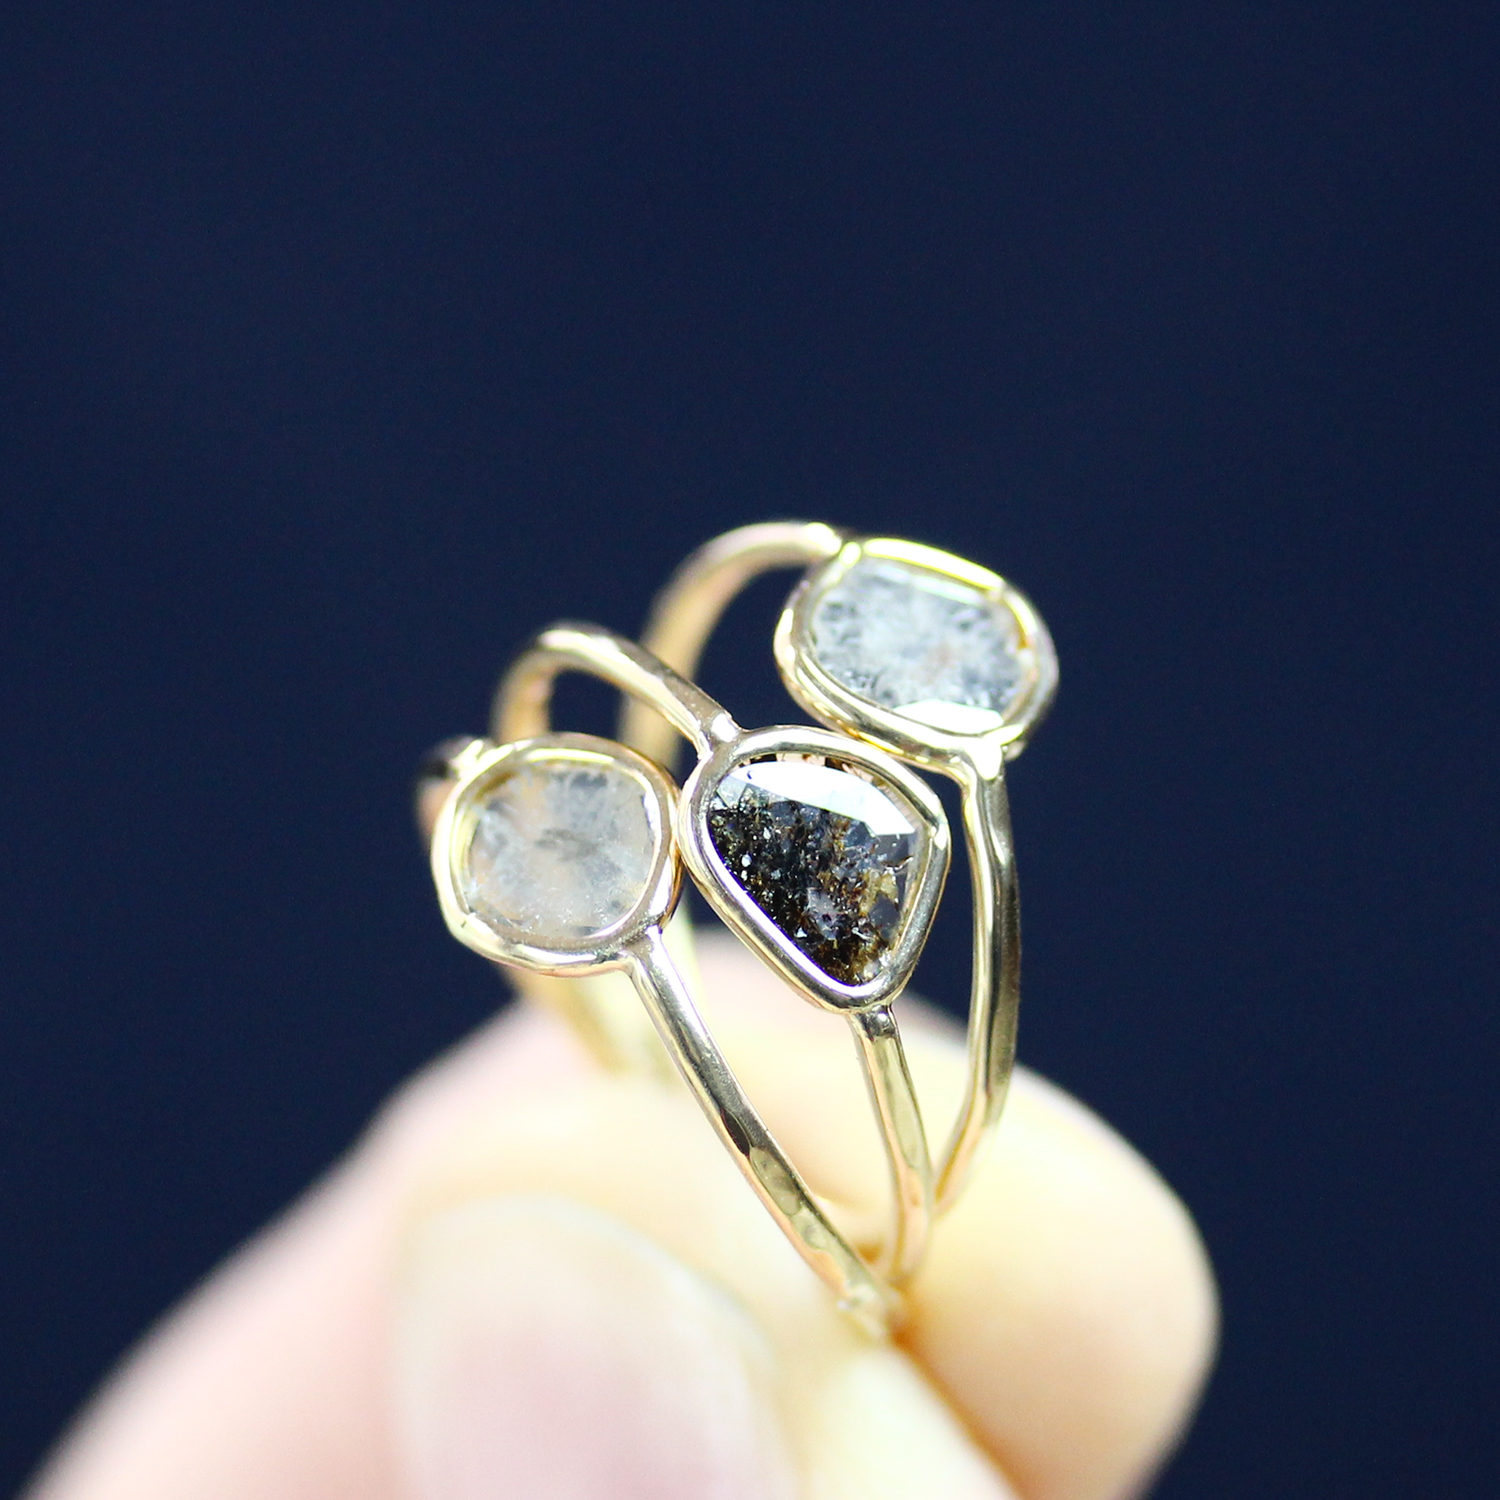 Diamond Slice Rings in 18K Gold